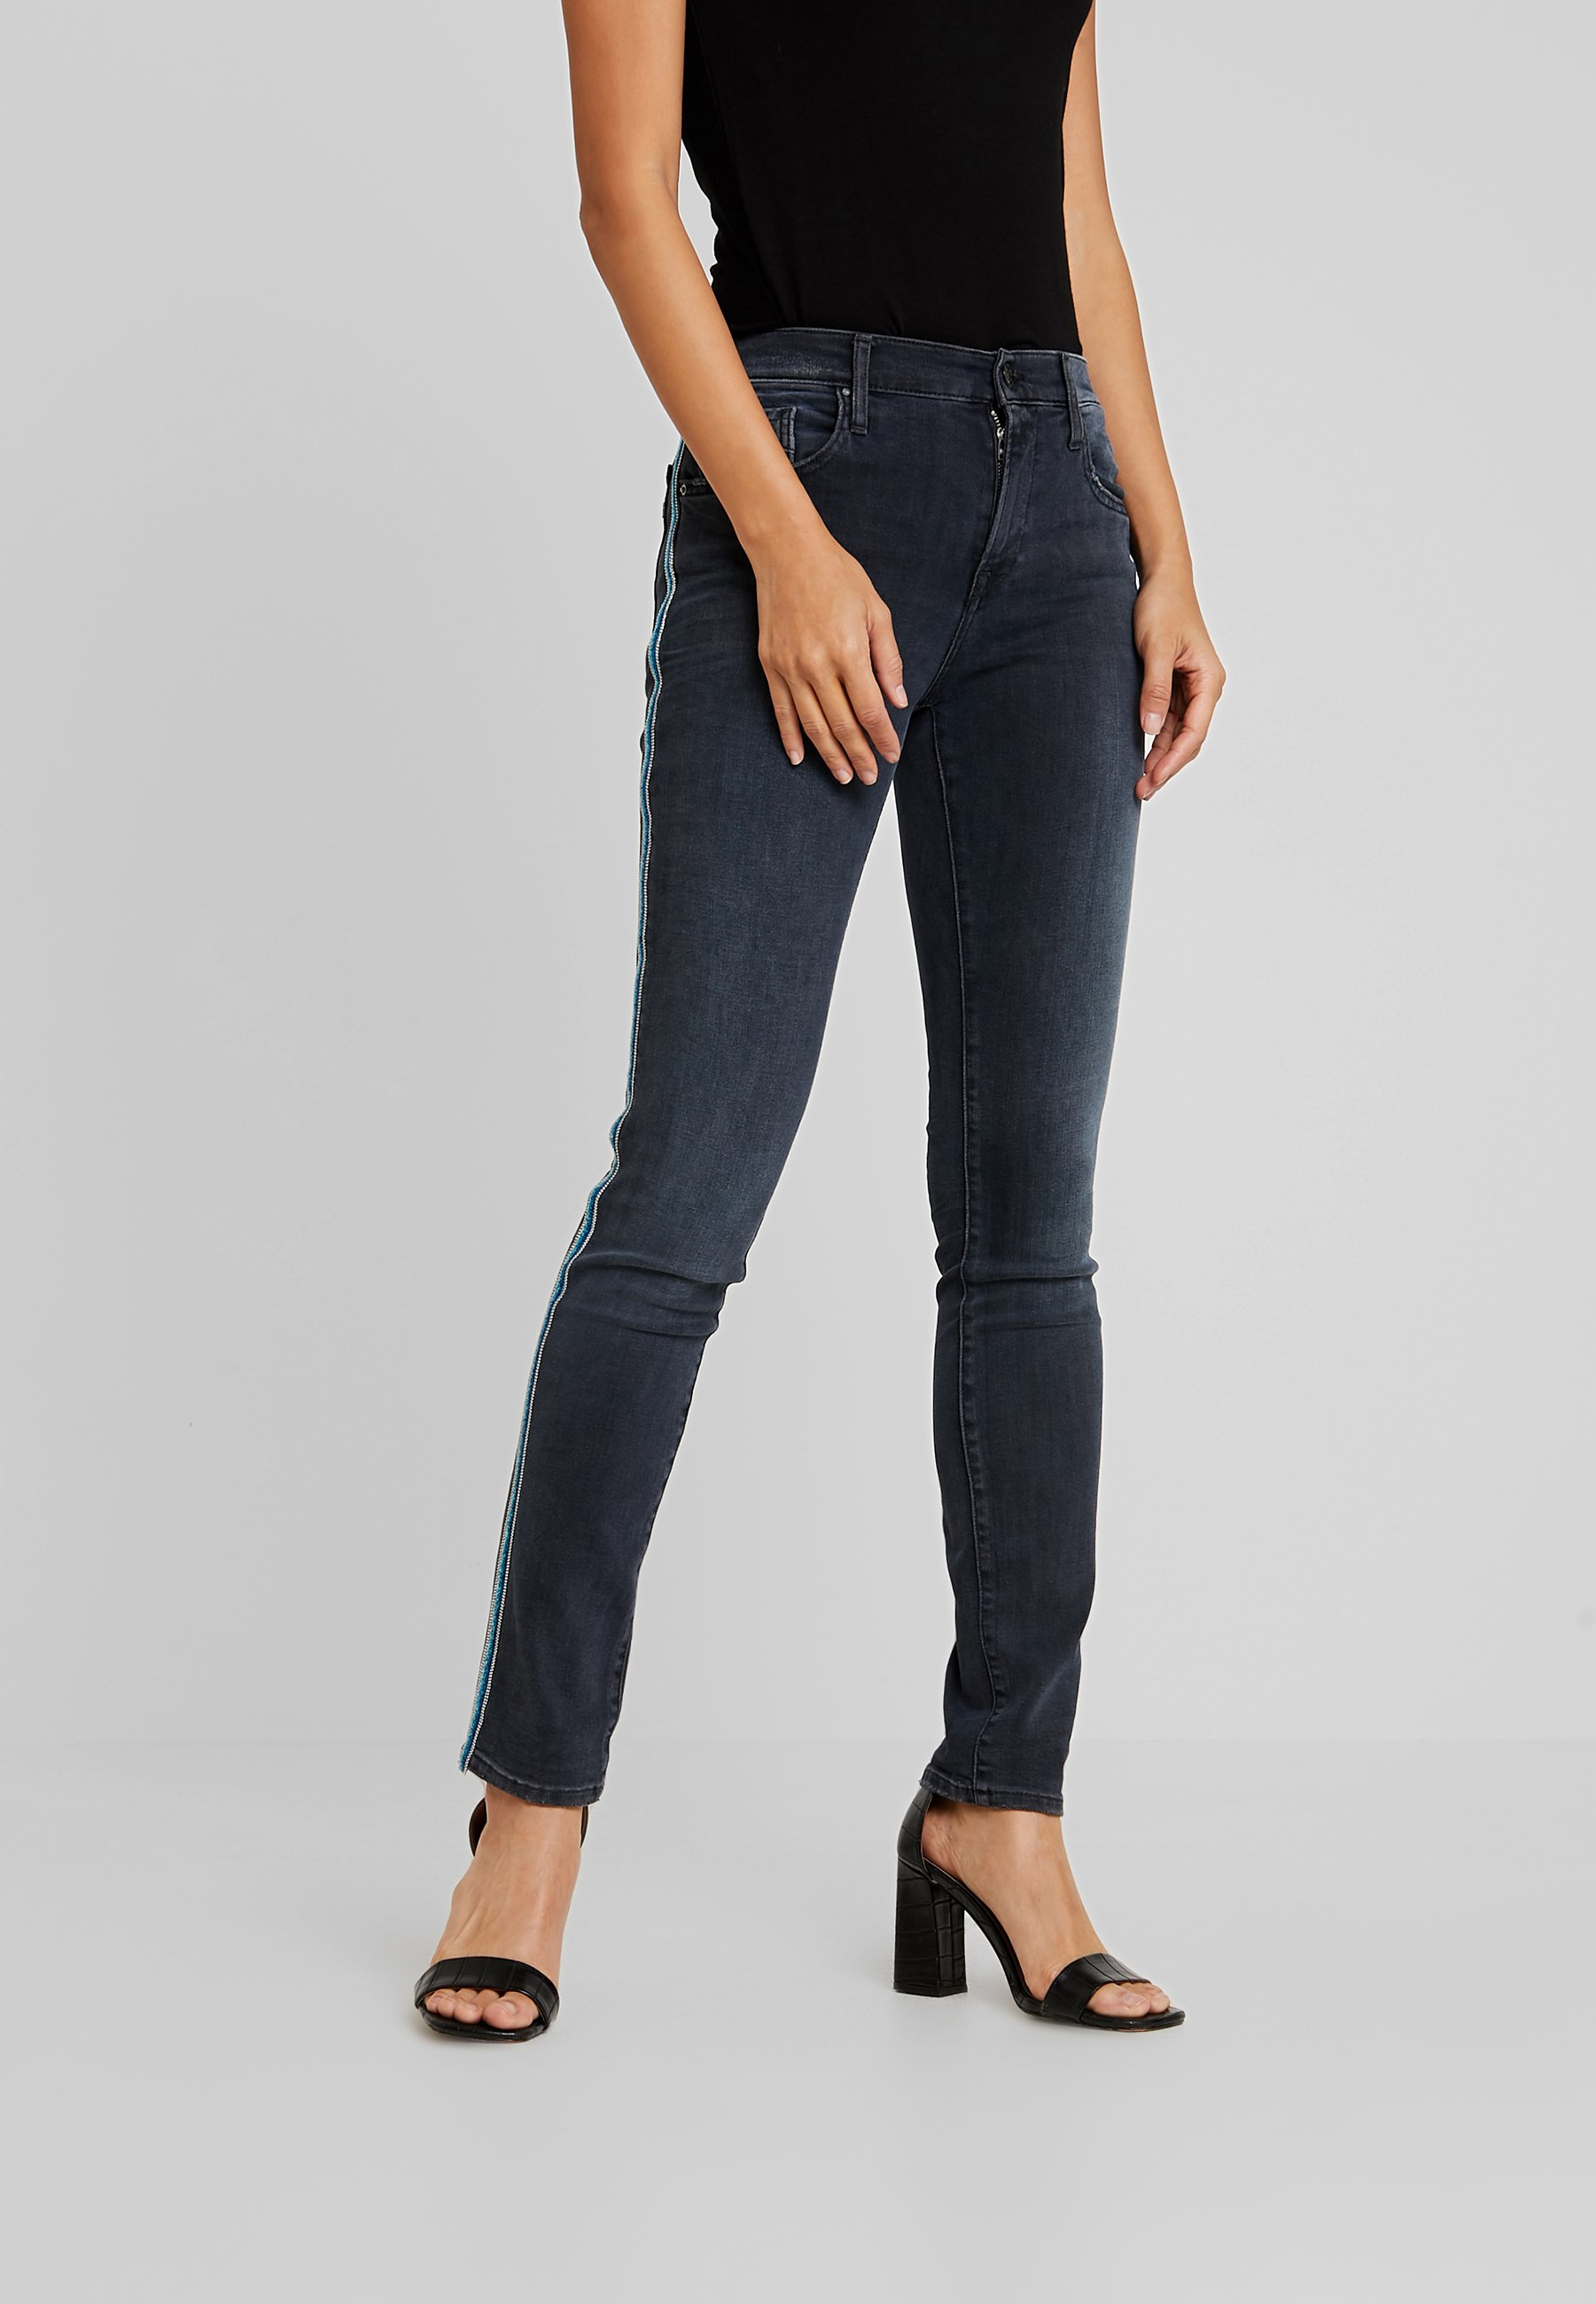 Replay A Blue Sigaretta Dark VivyJeans gfb6y7